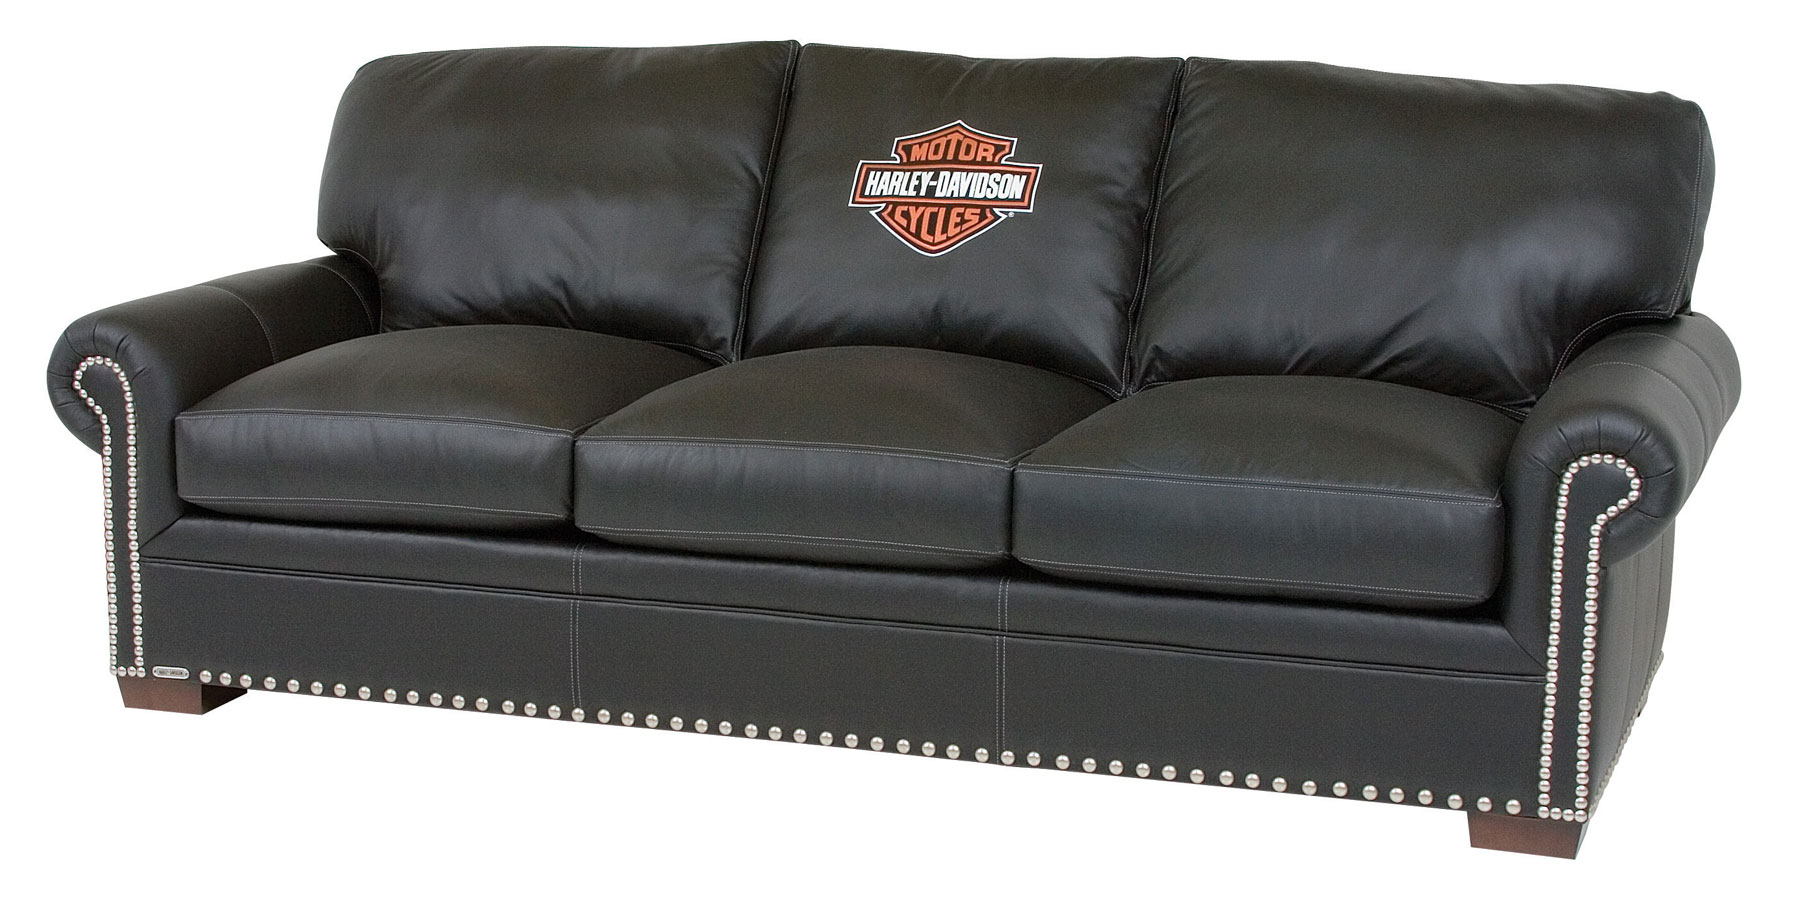 Harley davidson officially licensed black leather for Furniture collection